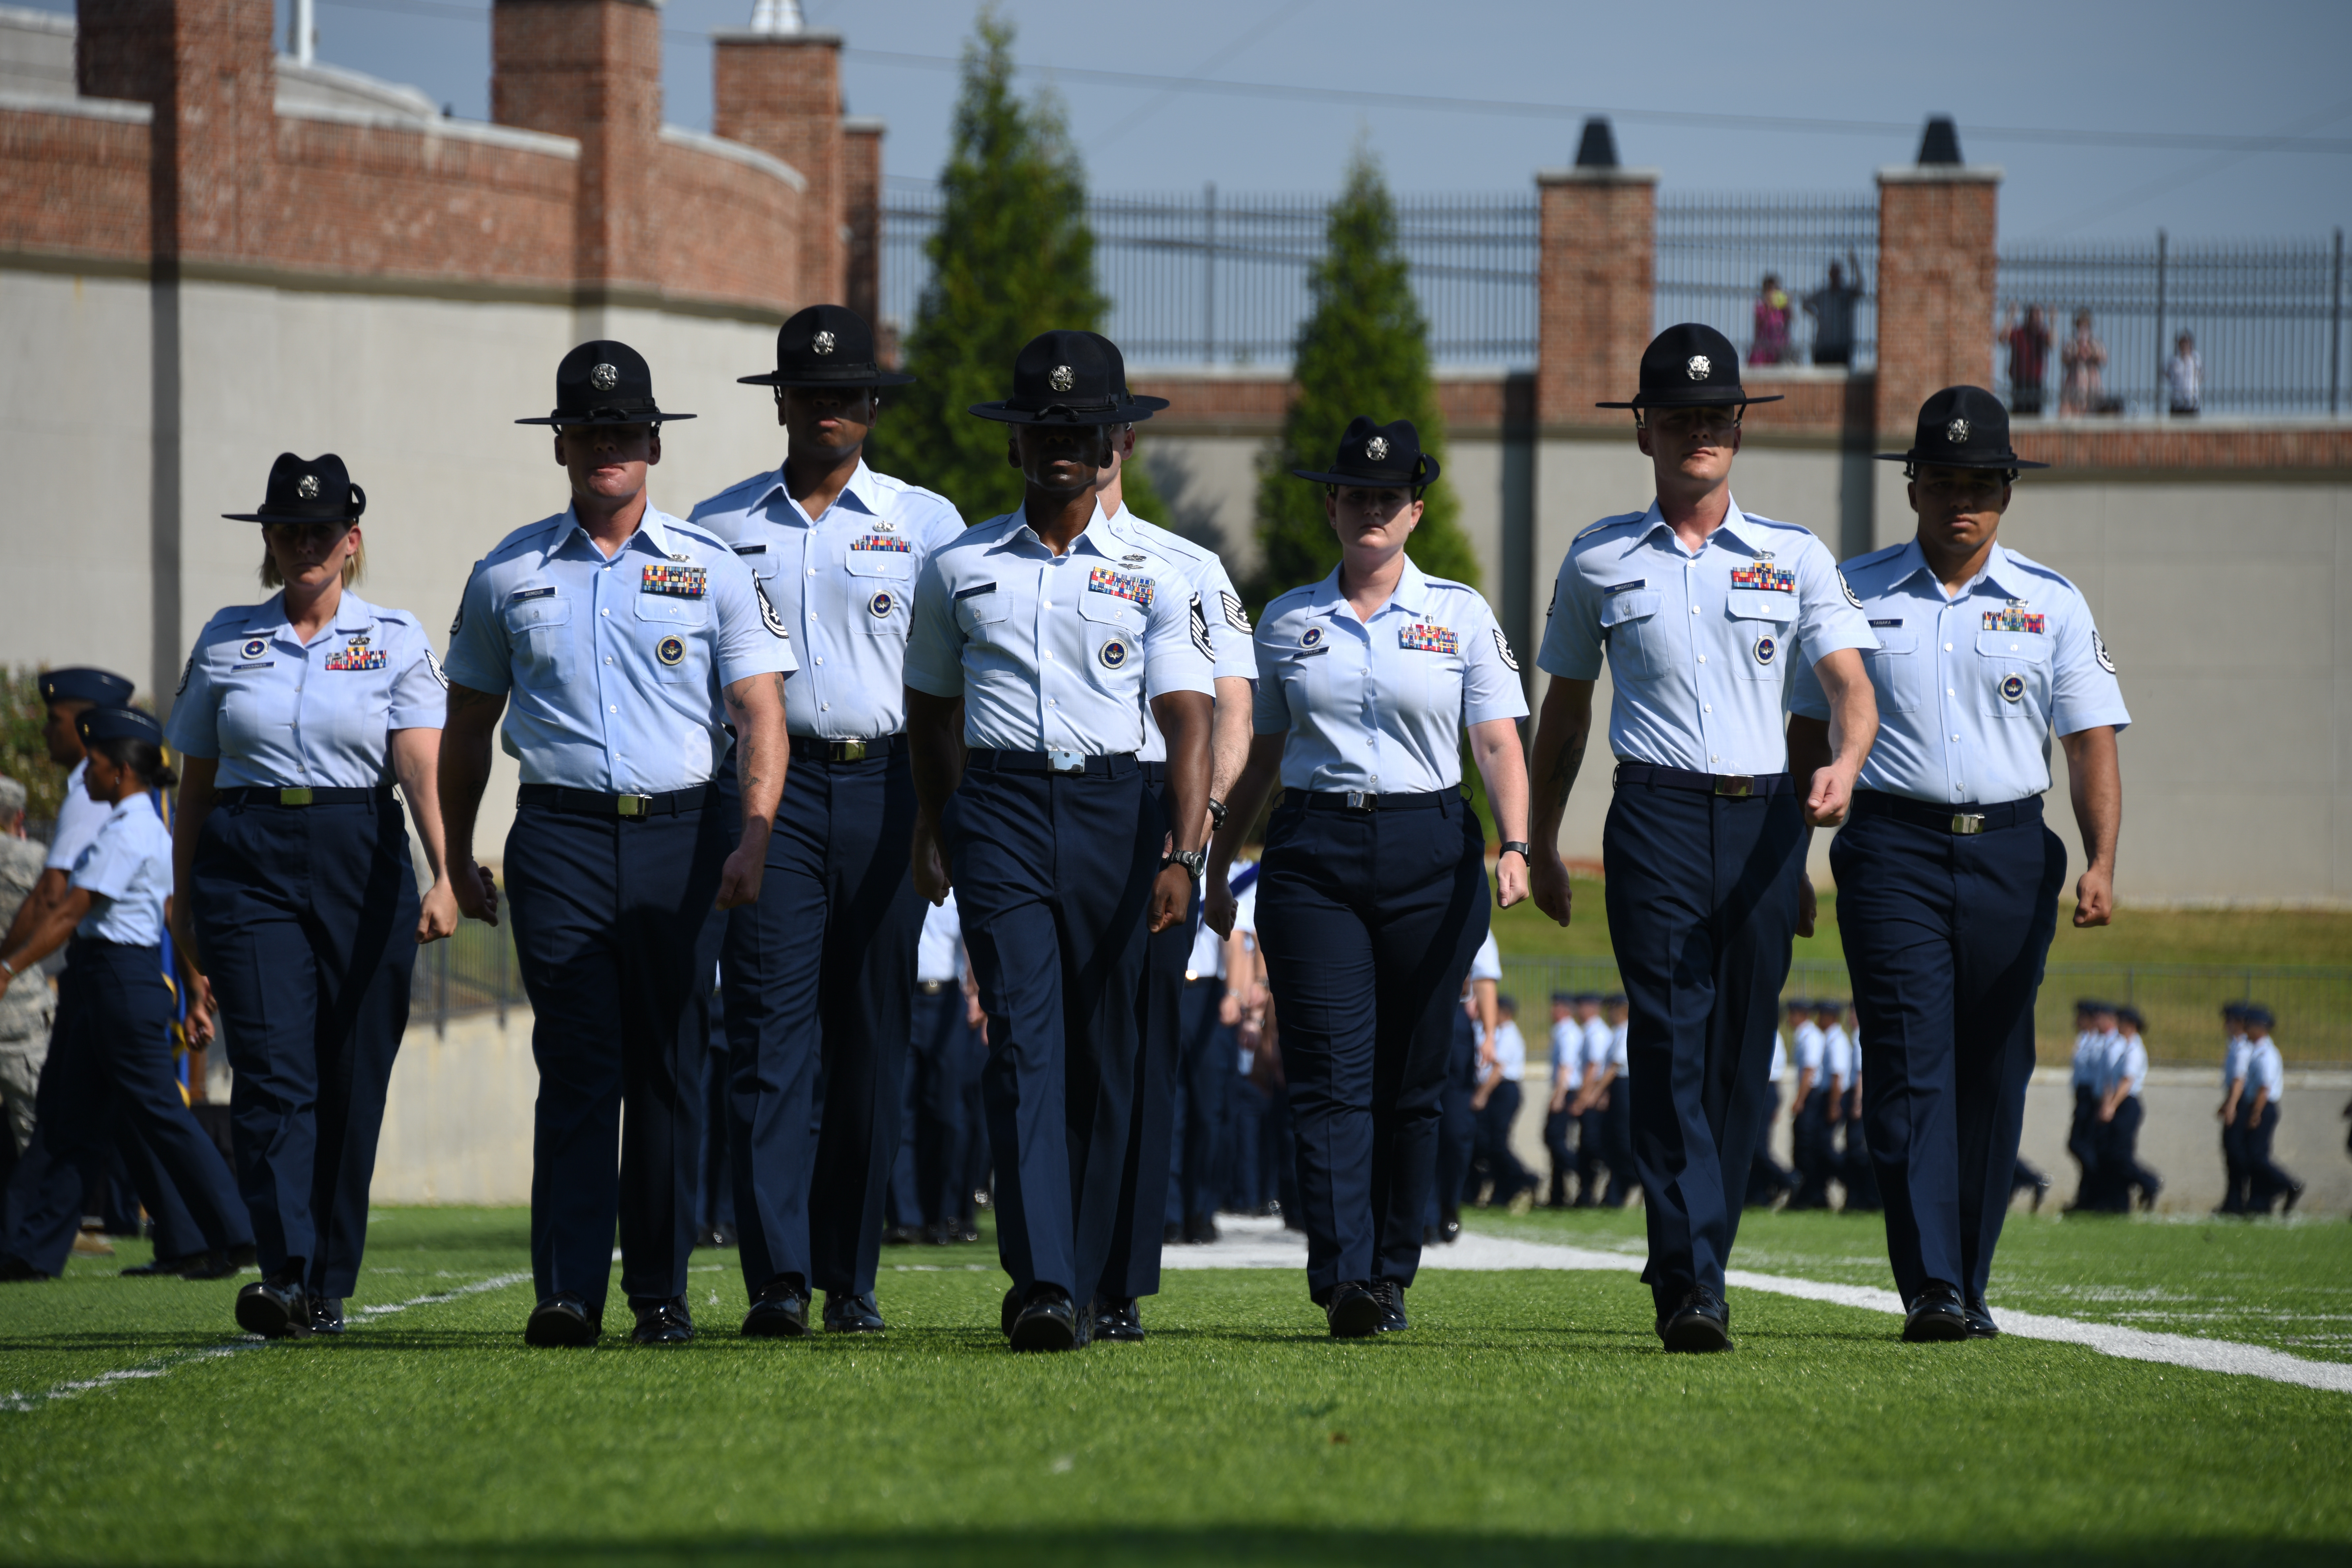 """Military training instructors from Officer Training School """"Godzilla"""" class 19-07 march forward during a graduation ceremony Sept. 27, 2019, Montgomery, Alabama. Class 19-07, also known as """"Godzilla Class,"""" spent the last eight weeks taking part in a series of field training and classroom leadership exercises preparing them to become Air Force officers. (Staff Sgt. Quay Drawdy/Air Force)"""